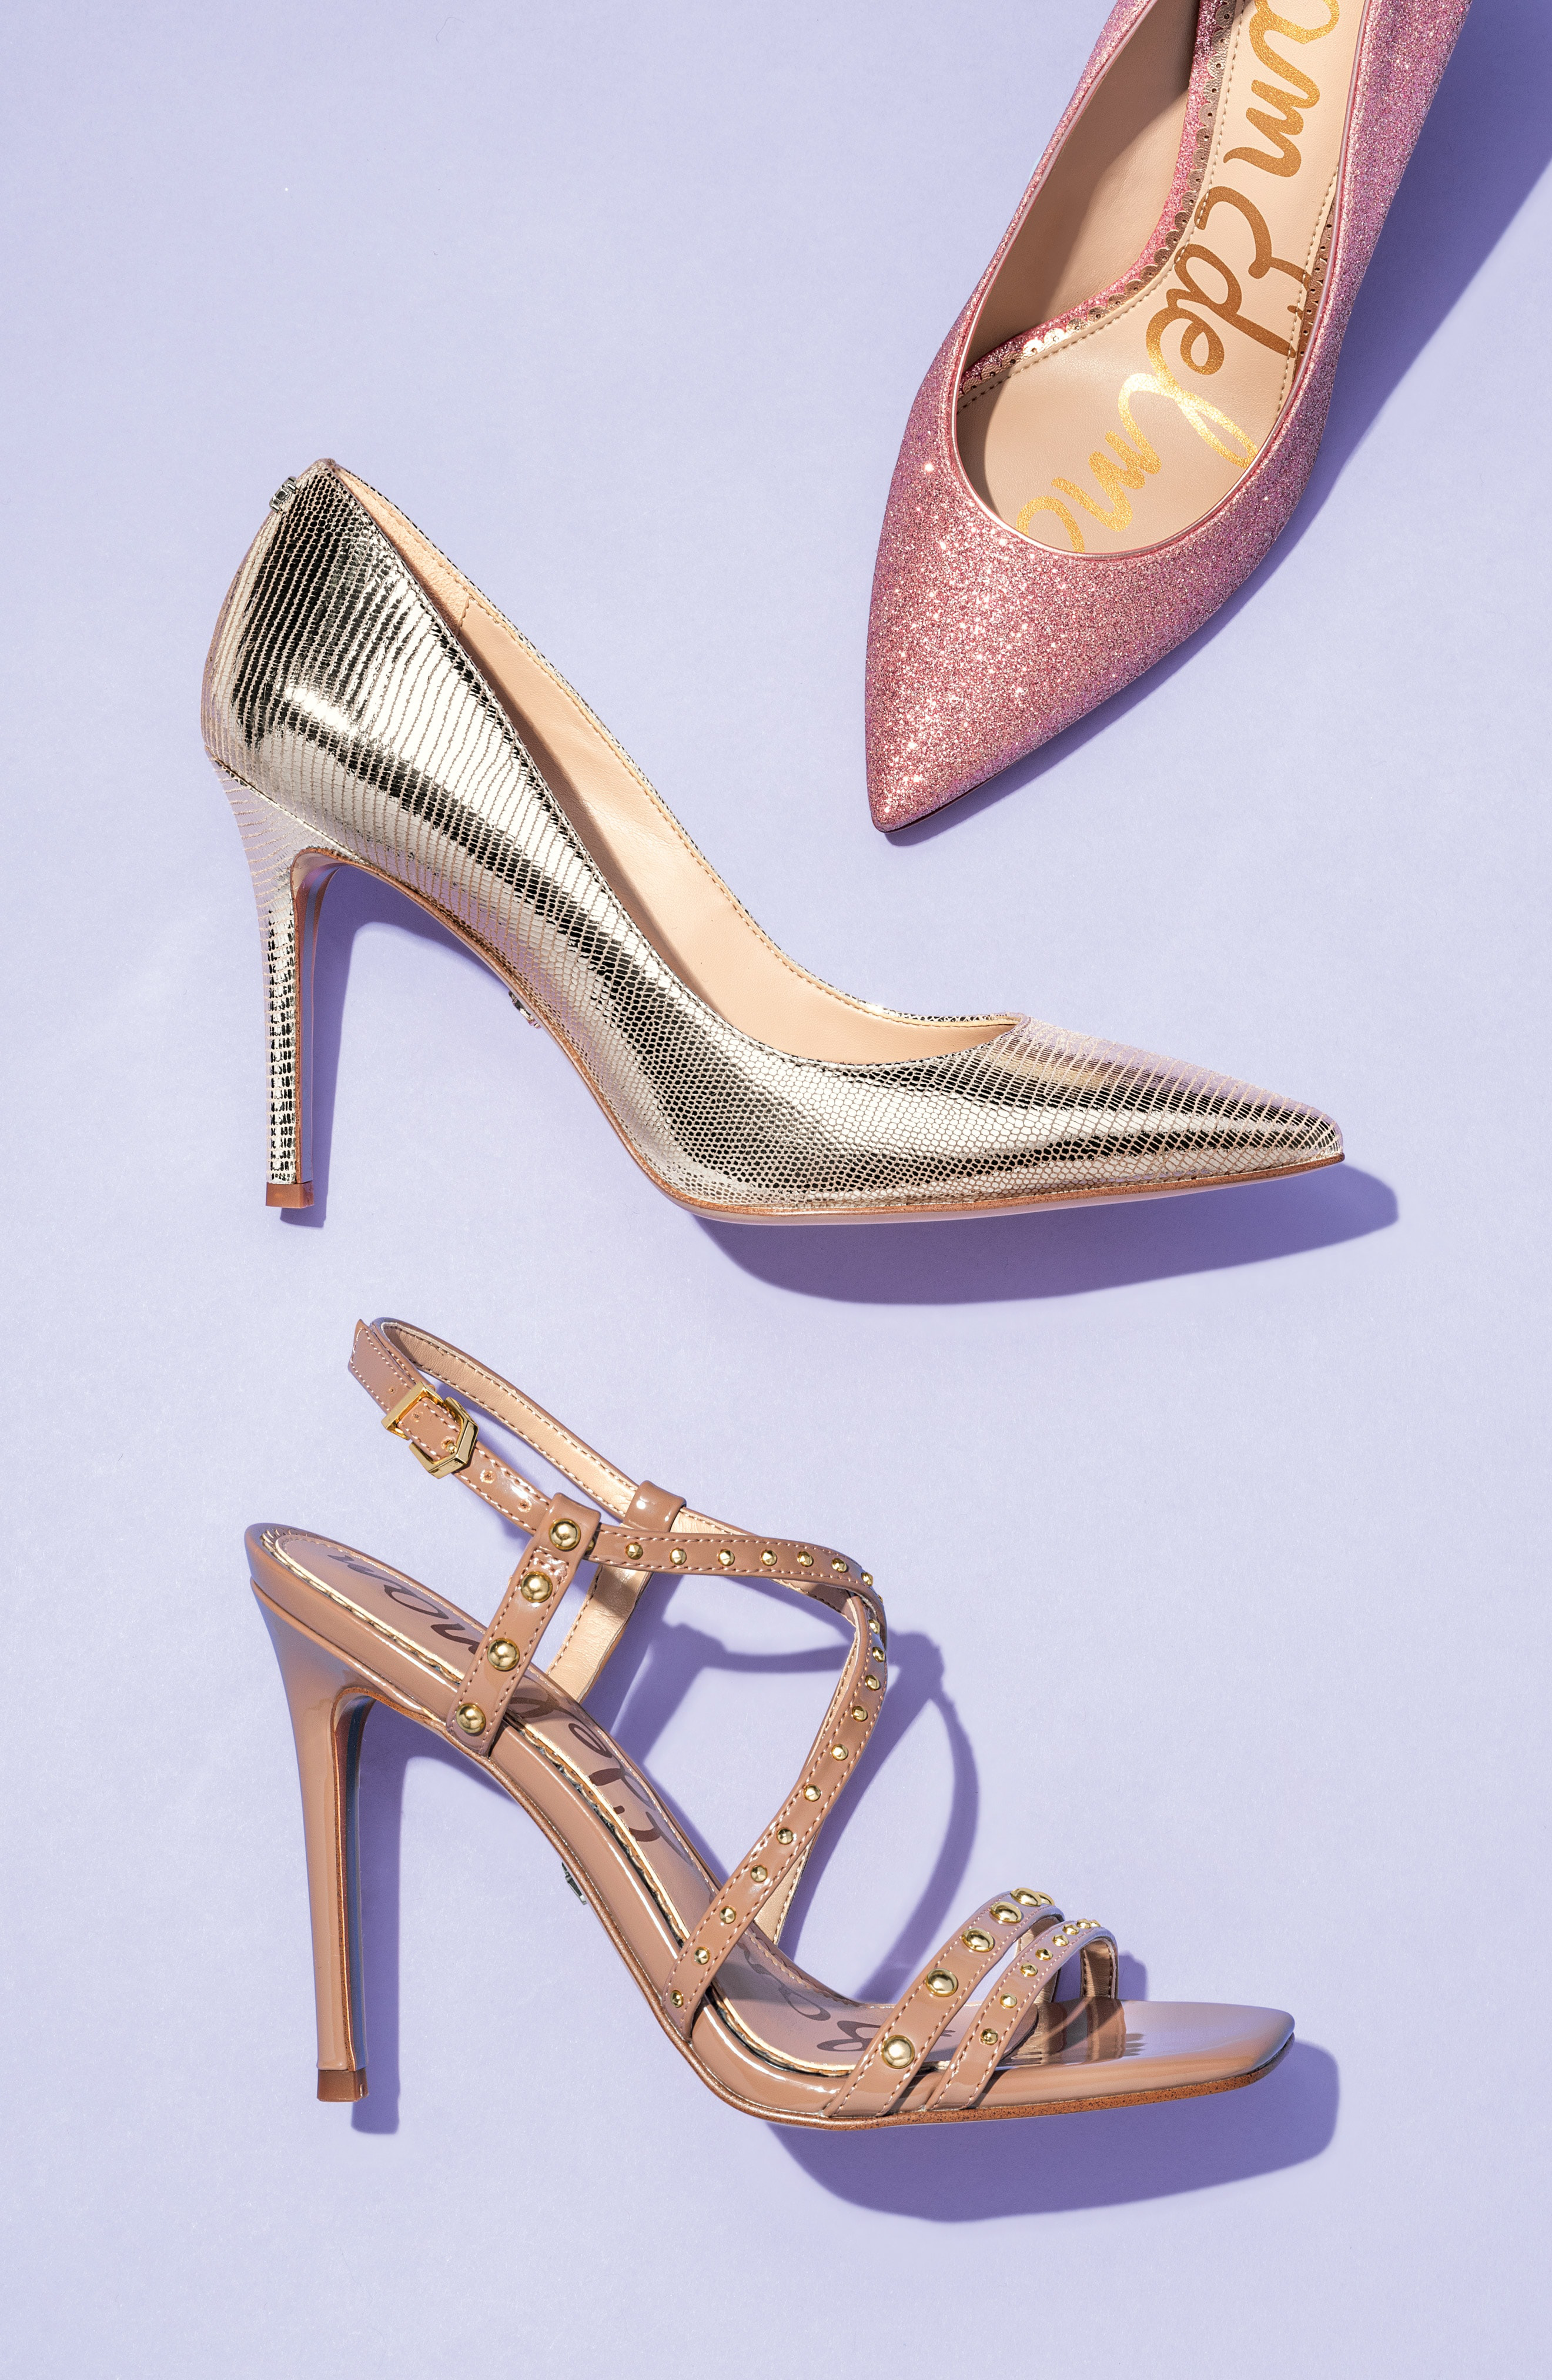 8e13b80933df A classic stiletto adds leg-lengthening lift and timeless appeal to an elegant  pointy-toe pump. Style Name  Sam Edelman Hazel Pointy Toe Pump (Women).